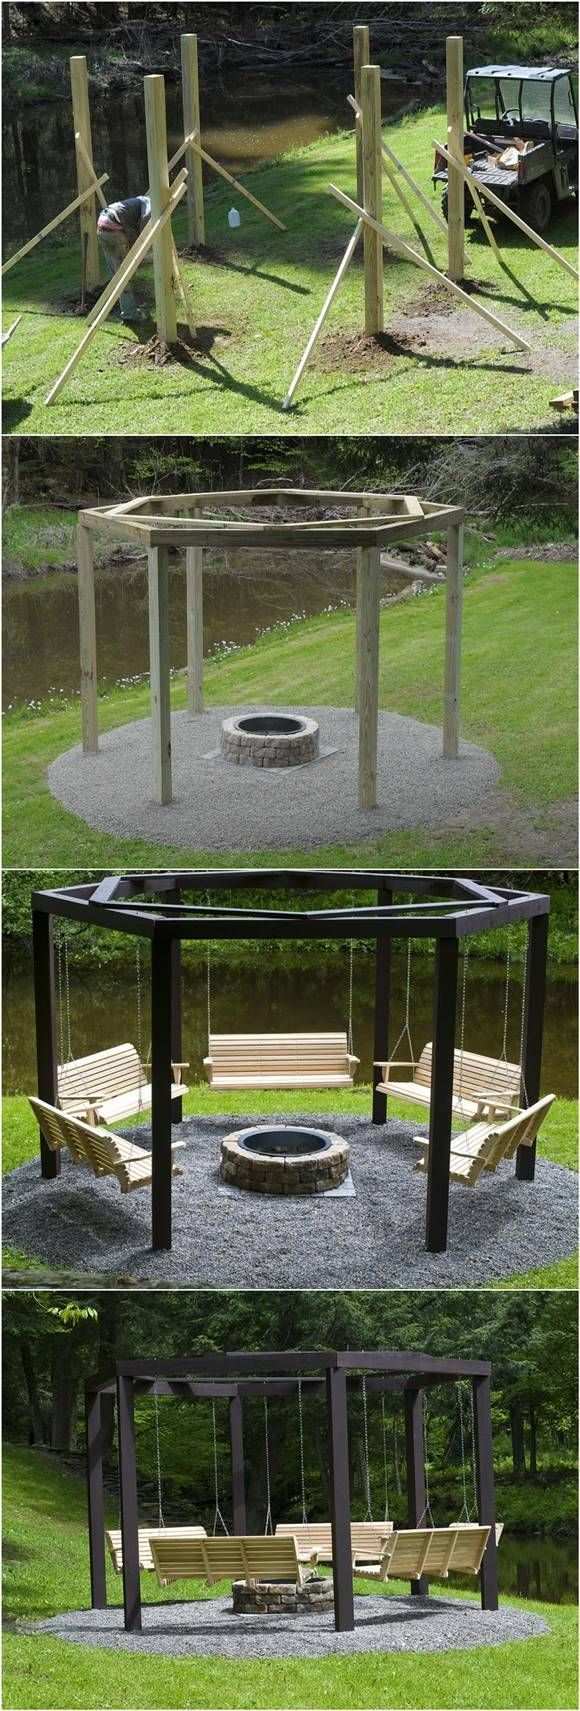 Best way to setup your Backyard Fire Pit and Outdoor Fireplace